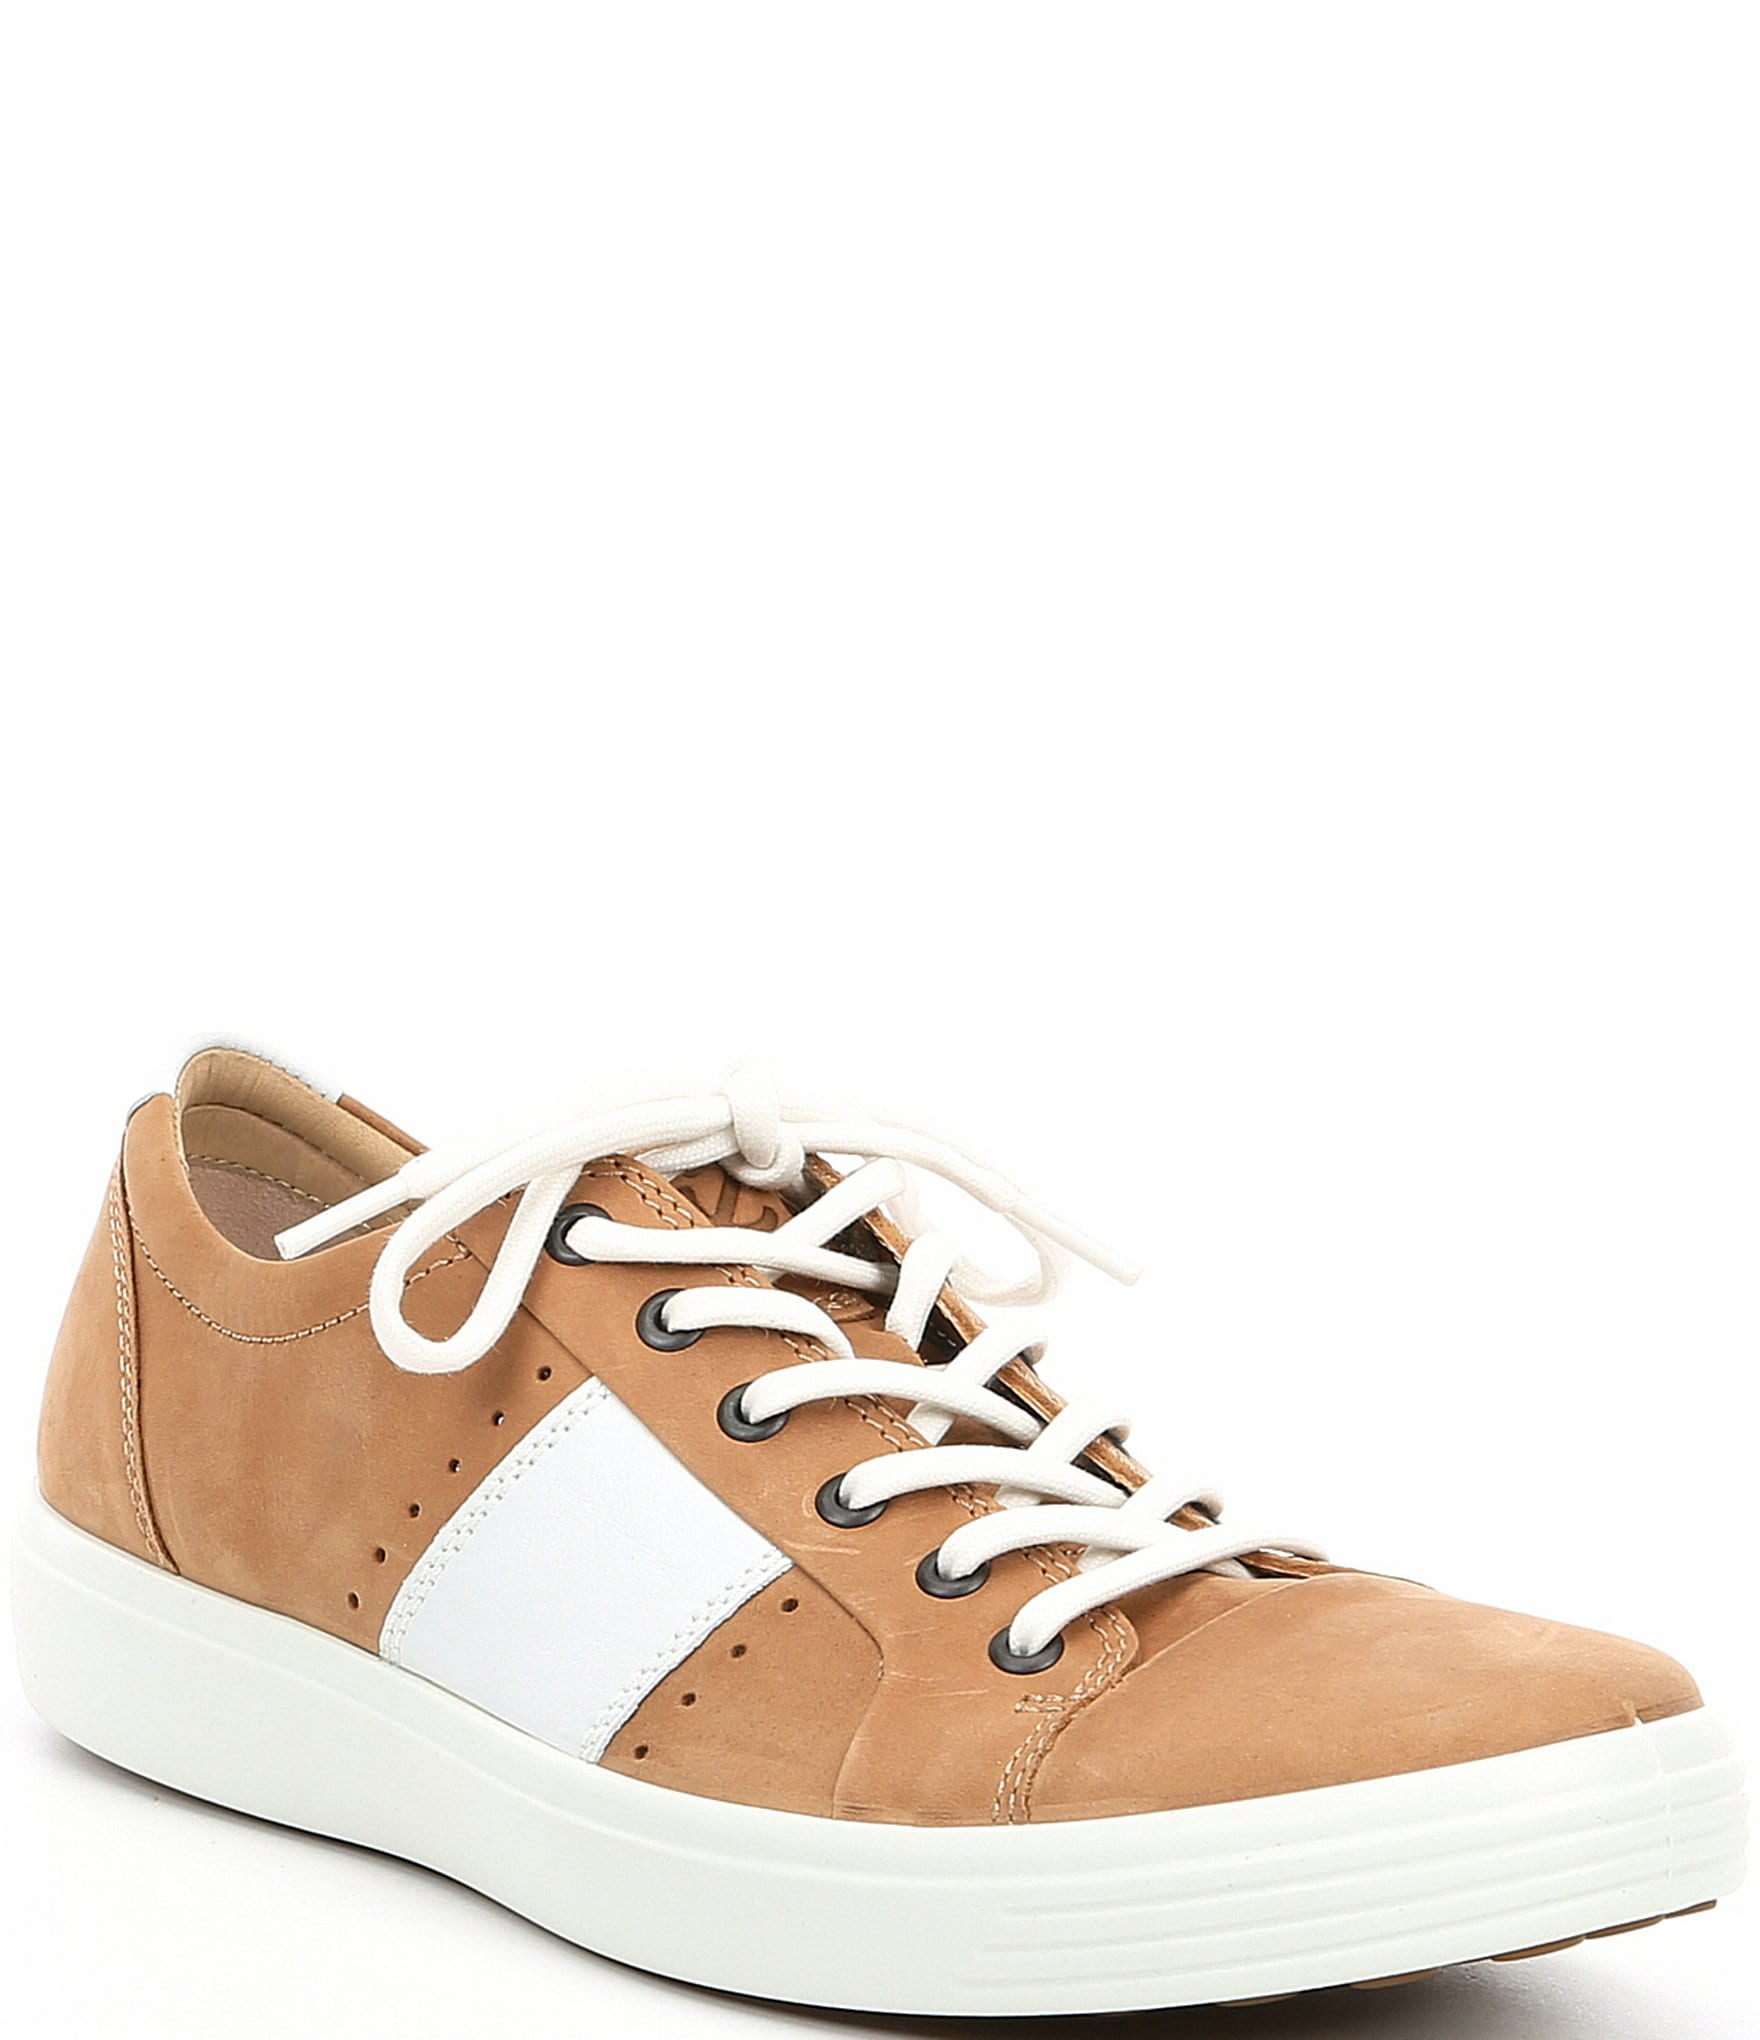 Soft 7 Leather Summer Sneaker